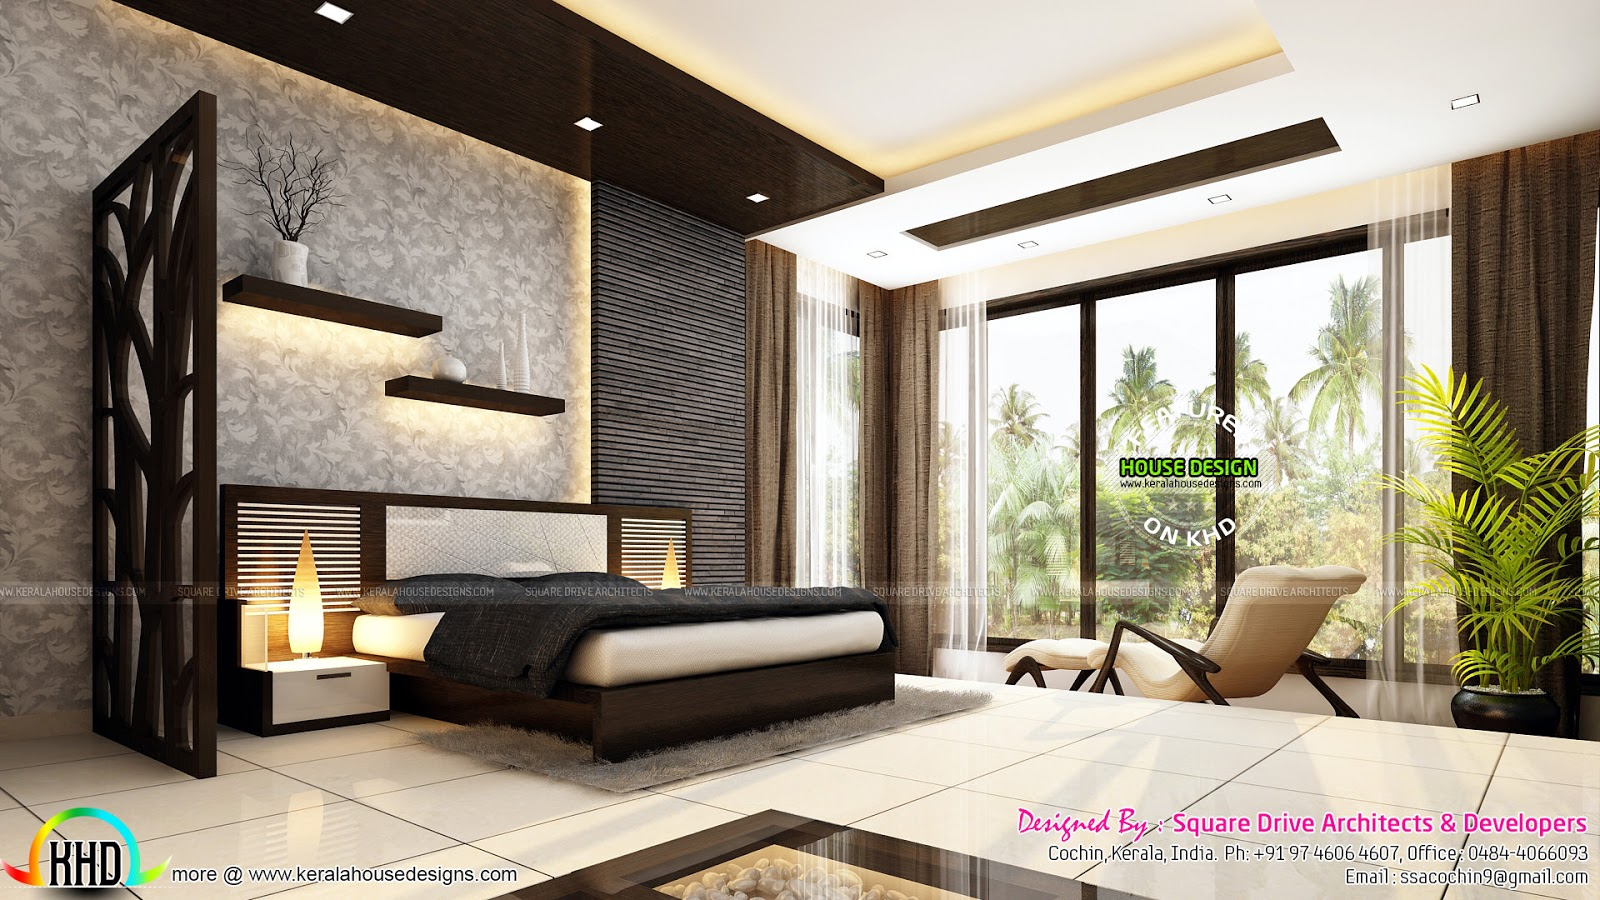 Very beautiful modern interior designs kerala home for House beautiful bedroom decor